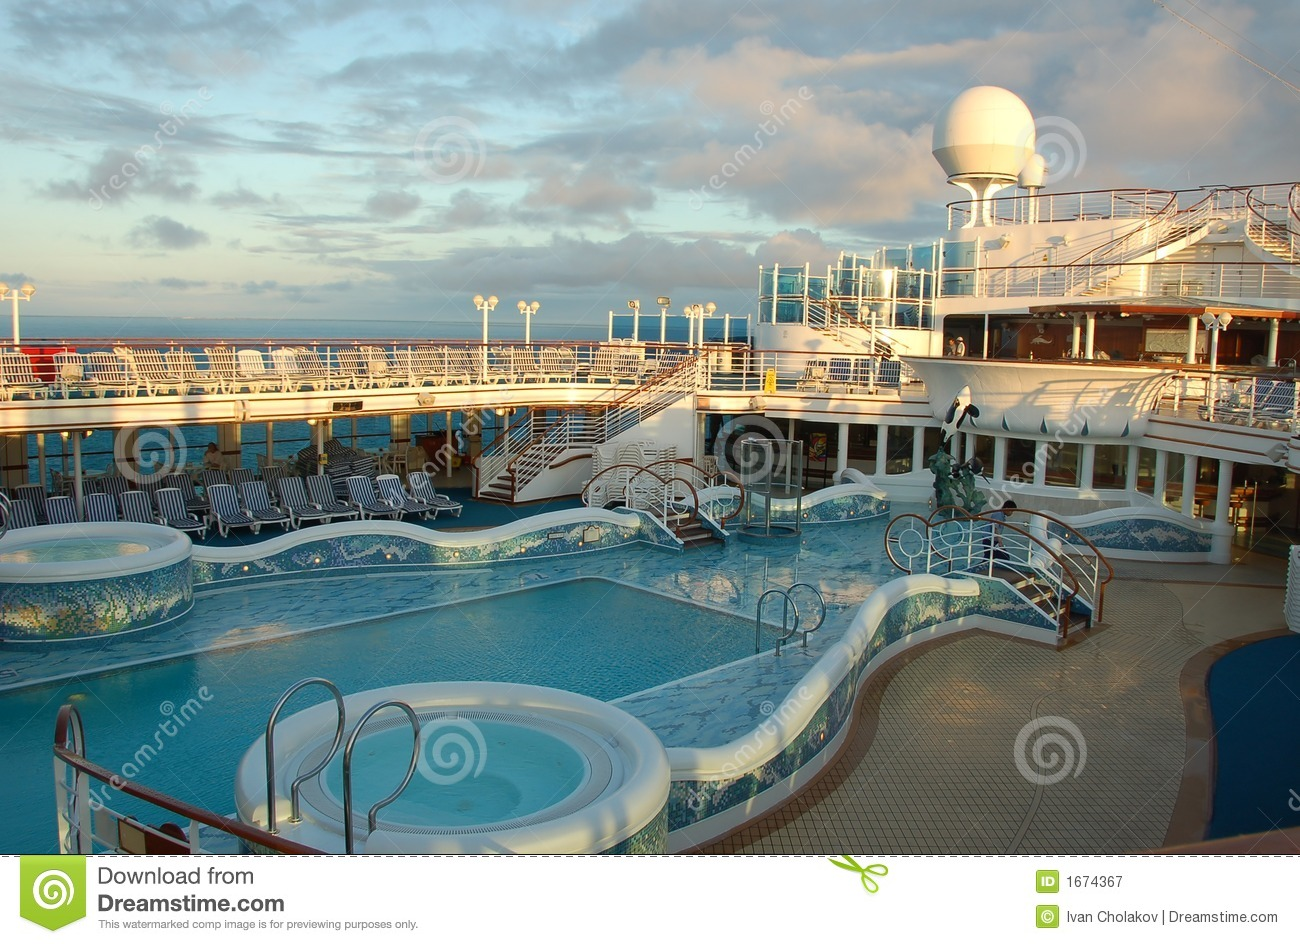 Pool Deck On Modern Cruise Ship Royalty Free Stock Photography Image 1674367